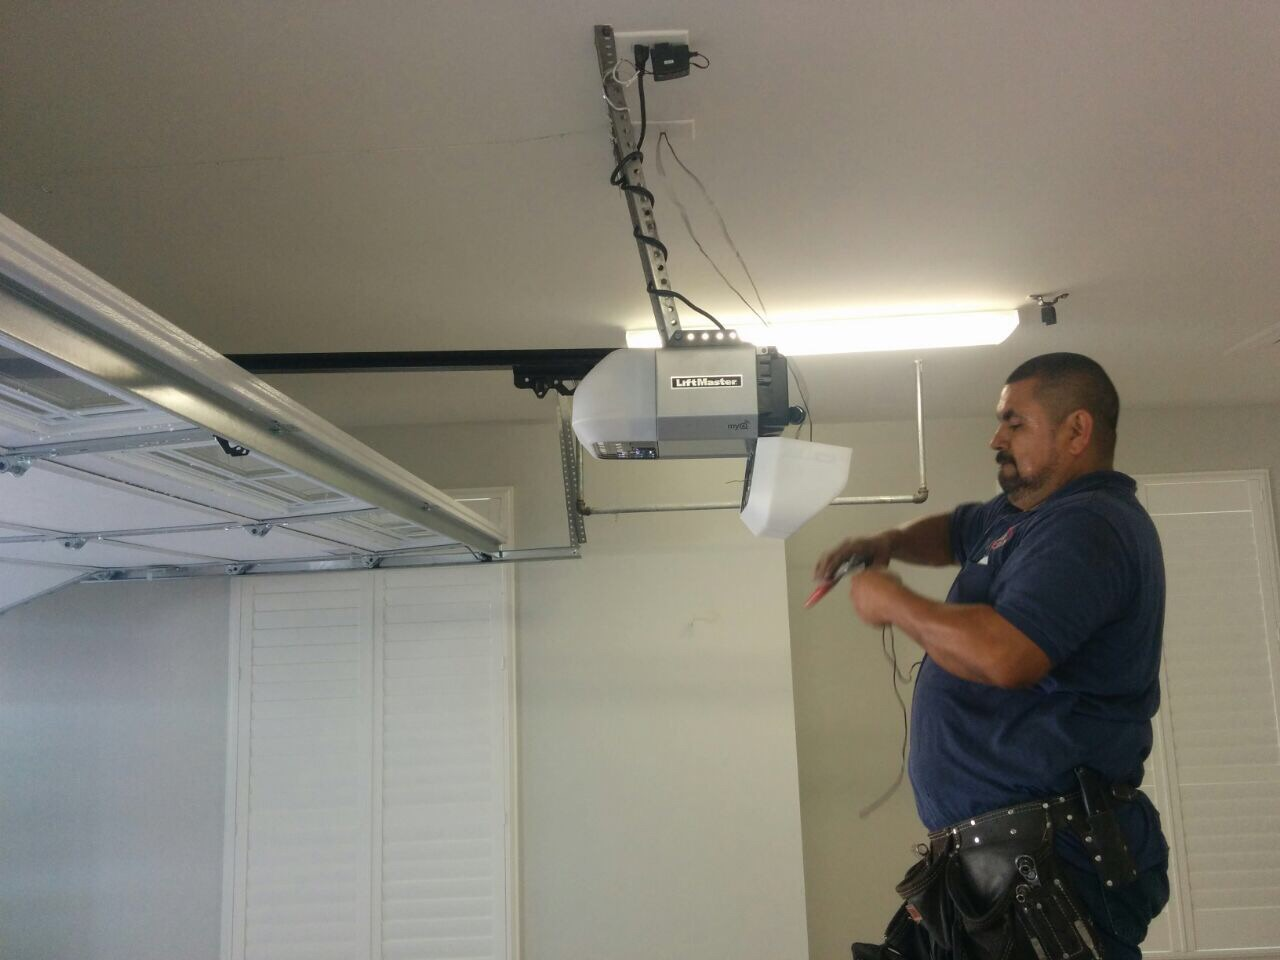 Liftmaster Garage Door Openers 24/7 Services